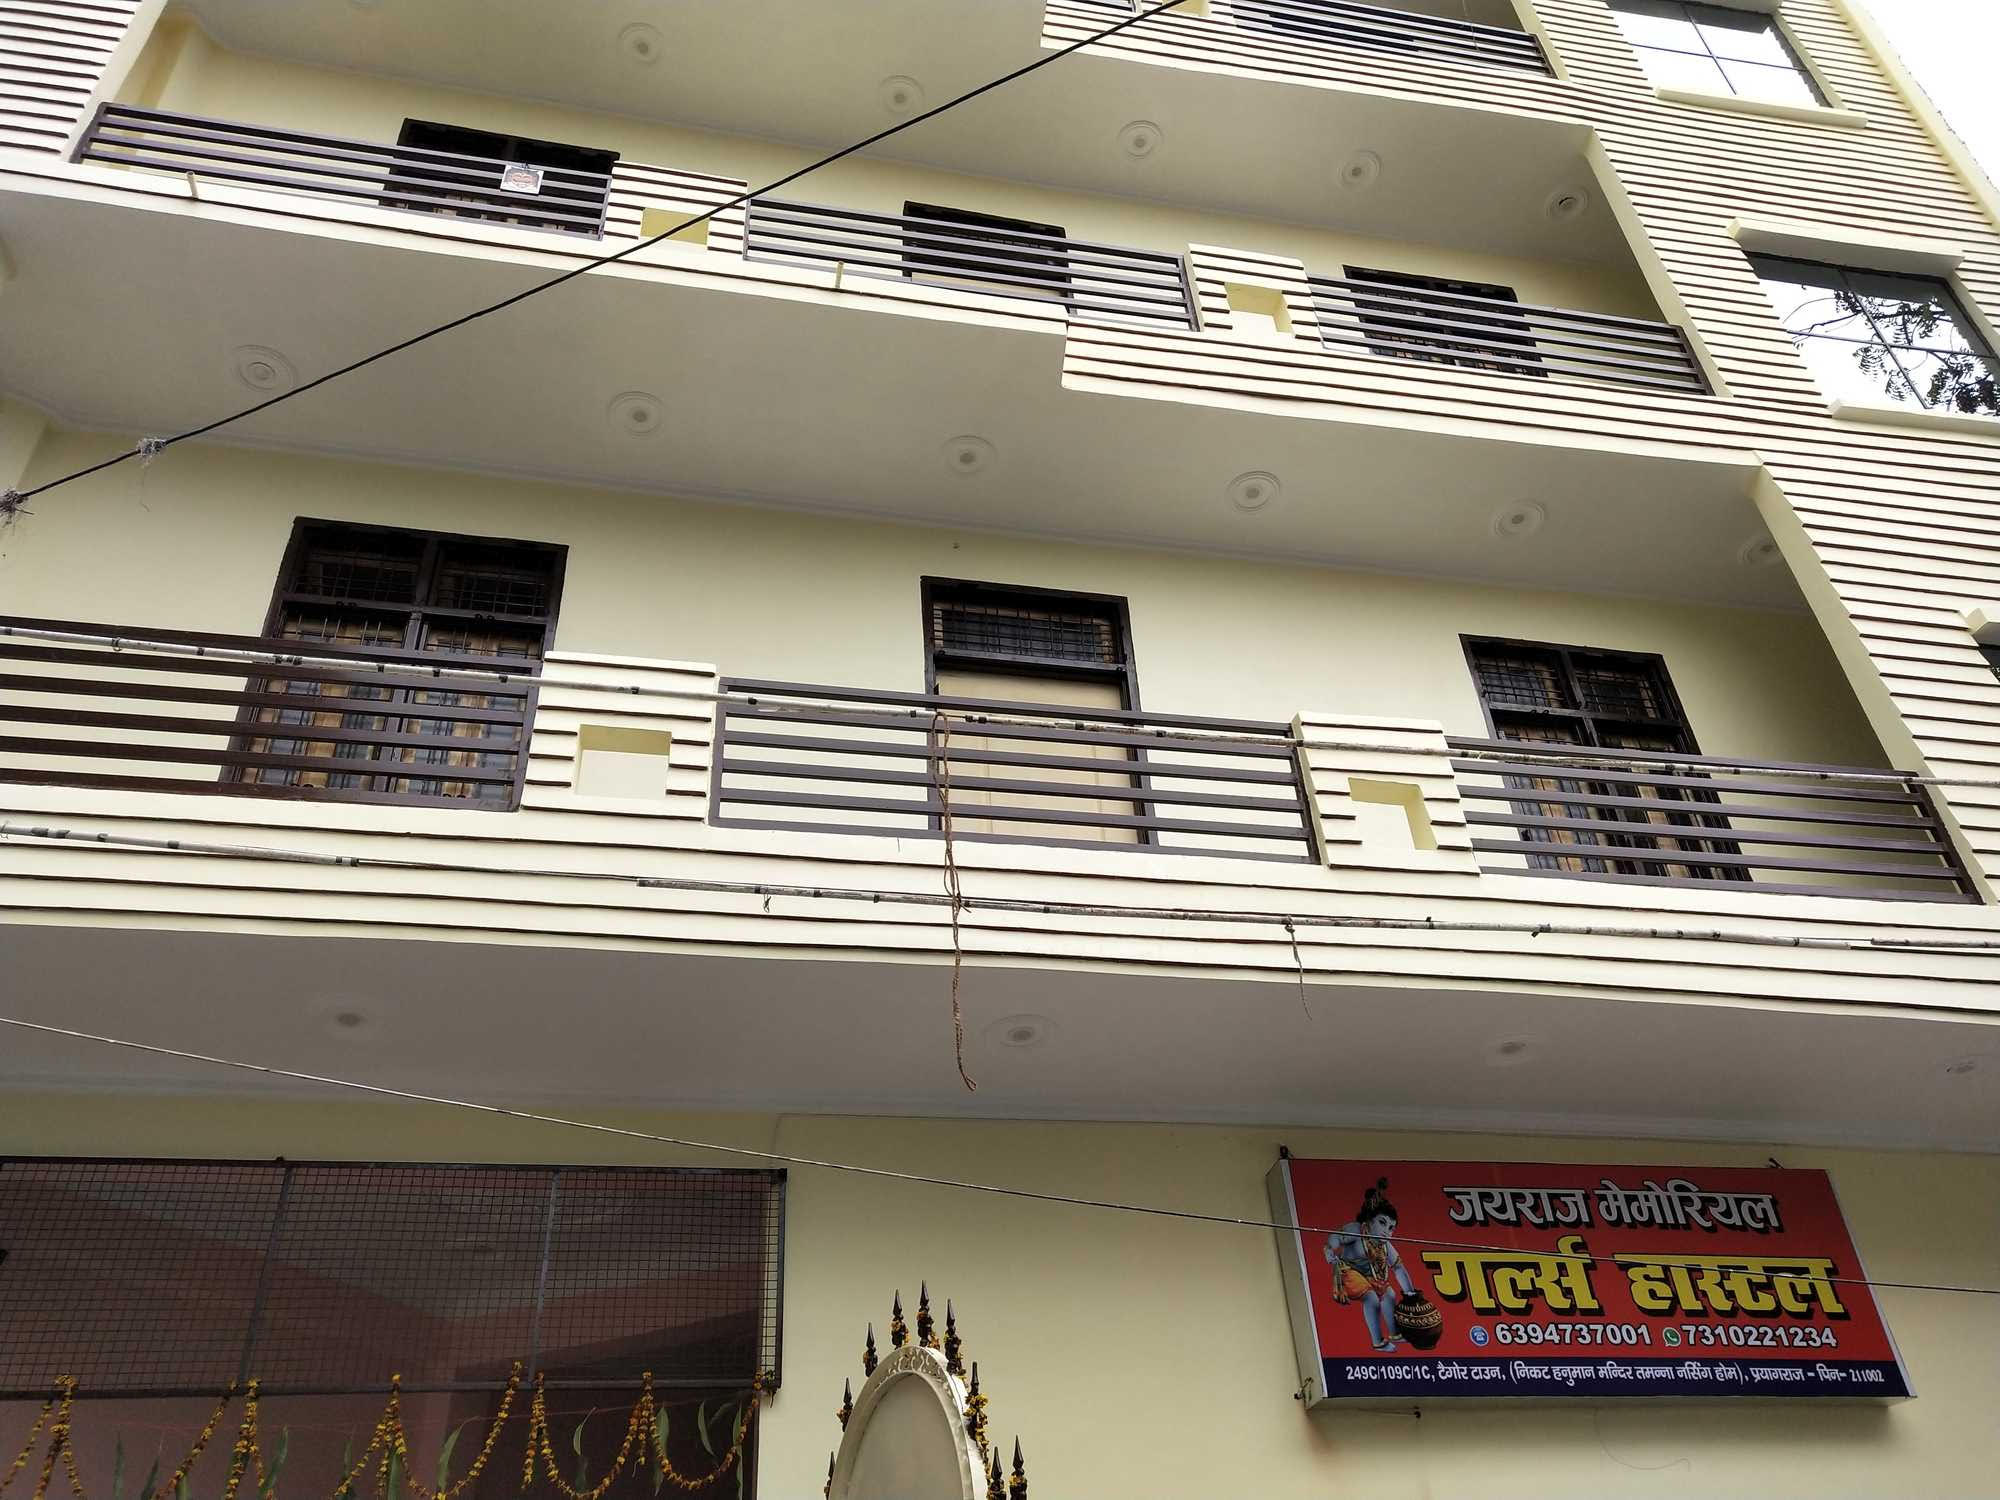 Jai Raj Memorial Girls Hostel